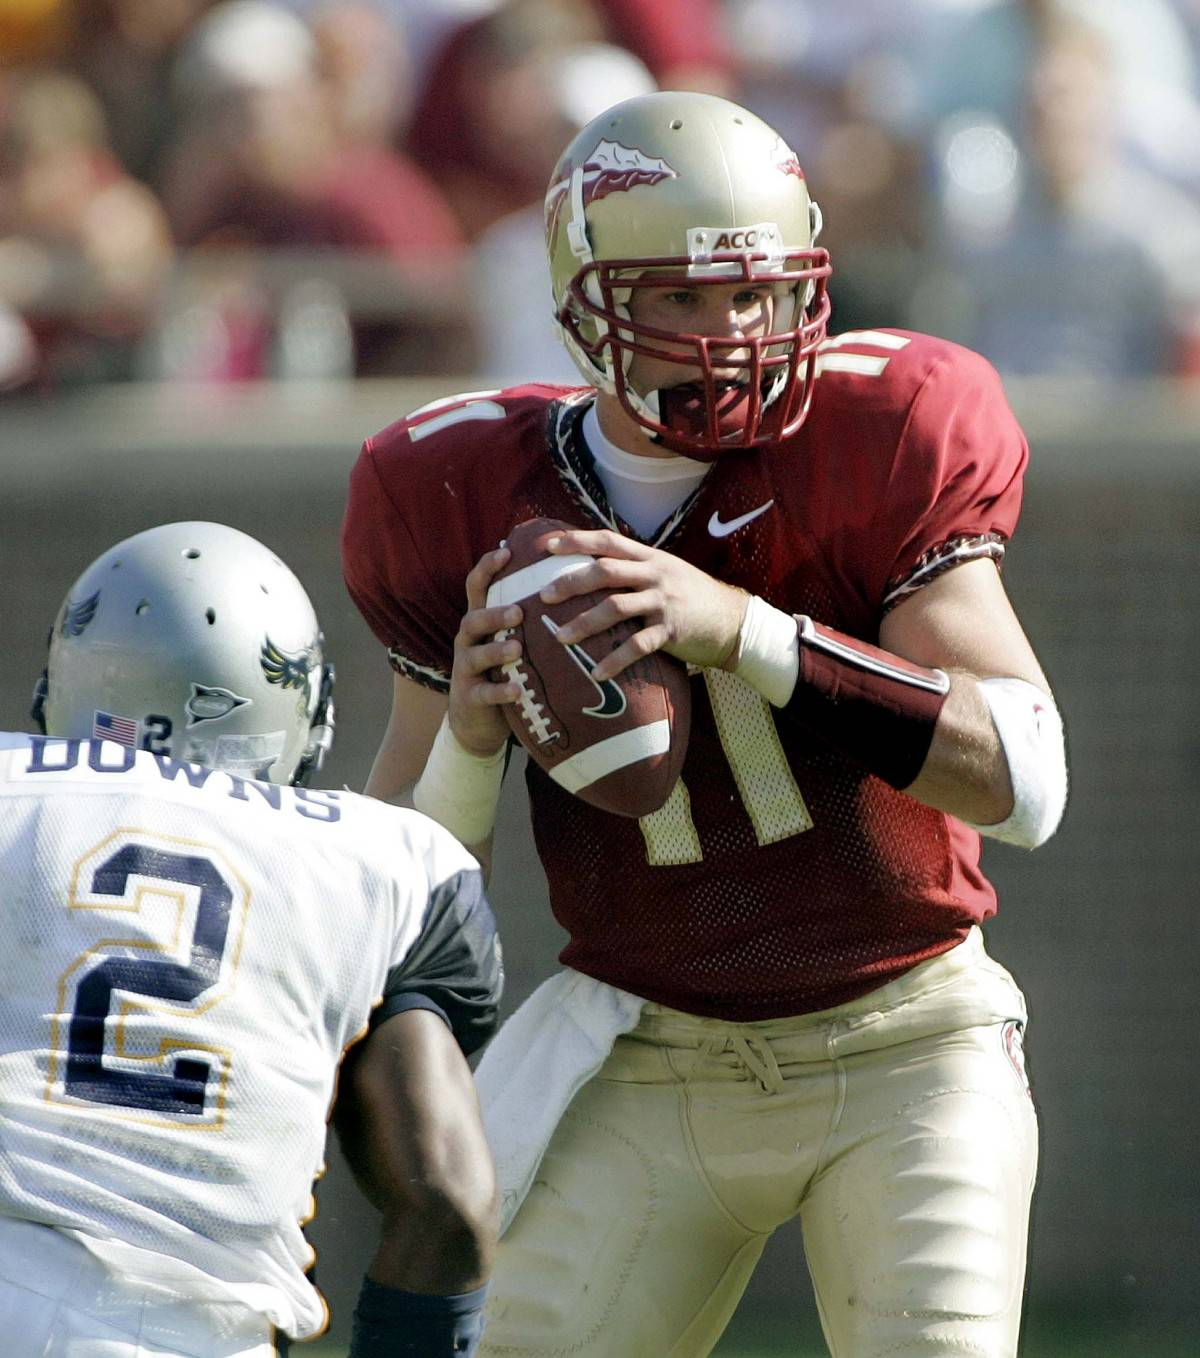 Florida State quarterback Drew Weatherford, right, is pressured by Rice's Andray Downs, left, during the second quarter of an college football game, Saturday, Sept. 23, 2006, in Tallahassee, Fla.(AP Photo/Phil Coale)